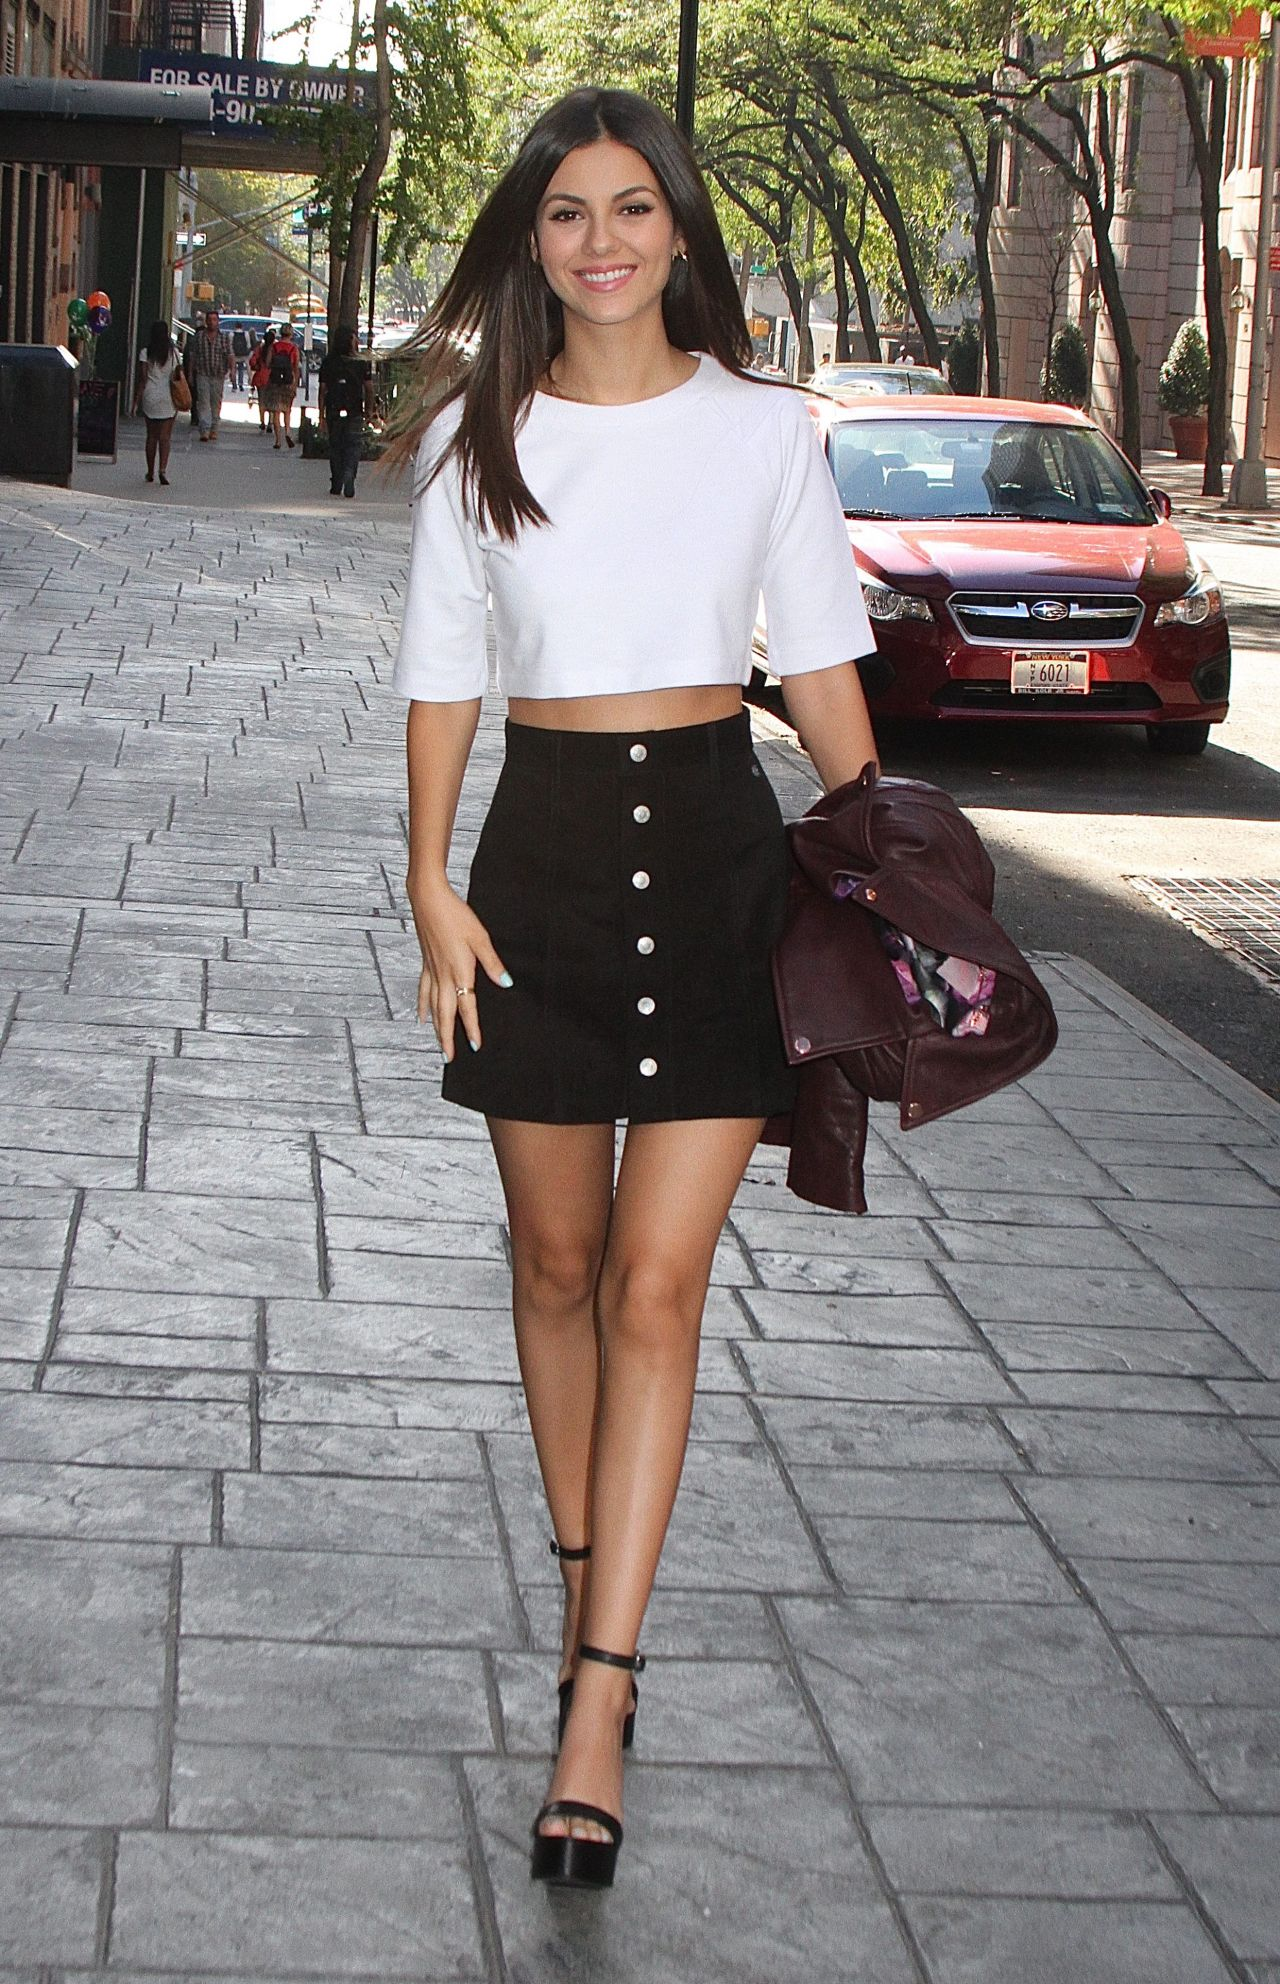 Victoria Justice Fashion - u0026#39;Good Day New Yorku0026#39; in New York City September 2015